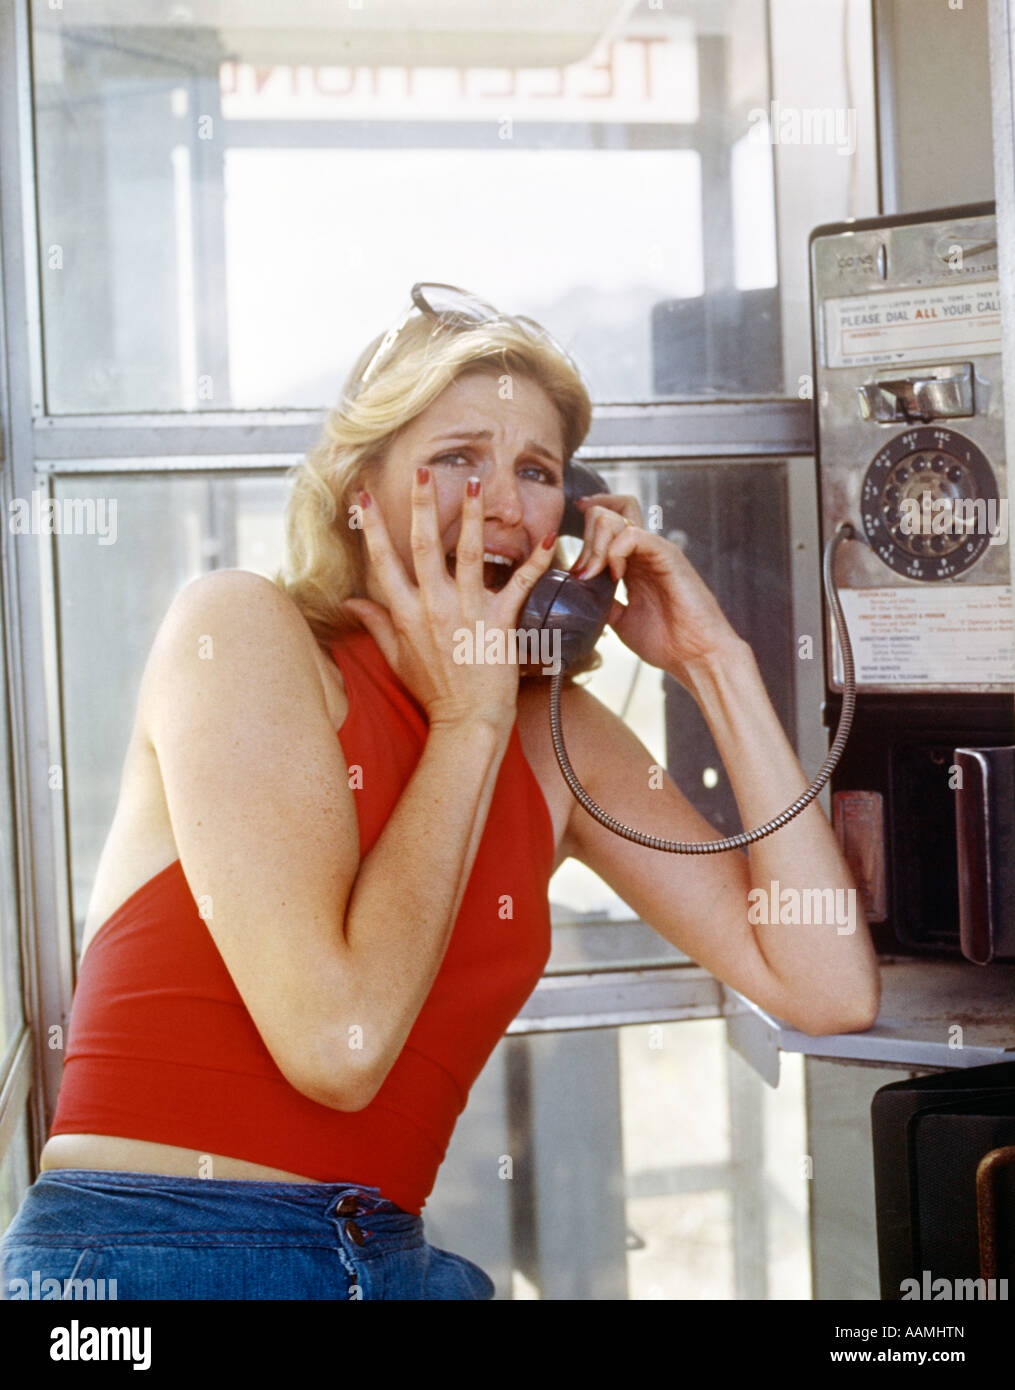 RETRO BLONDE WOMAN SCREAMING TERRIFIED IN PAY TELEPHONE BOOTH CRIME MYSTERY DANGER VICTIM ASSAULT INJURY PAIN RED - Stock Image